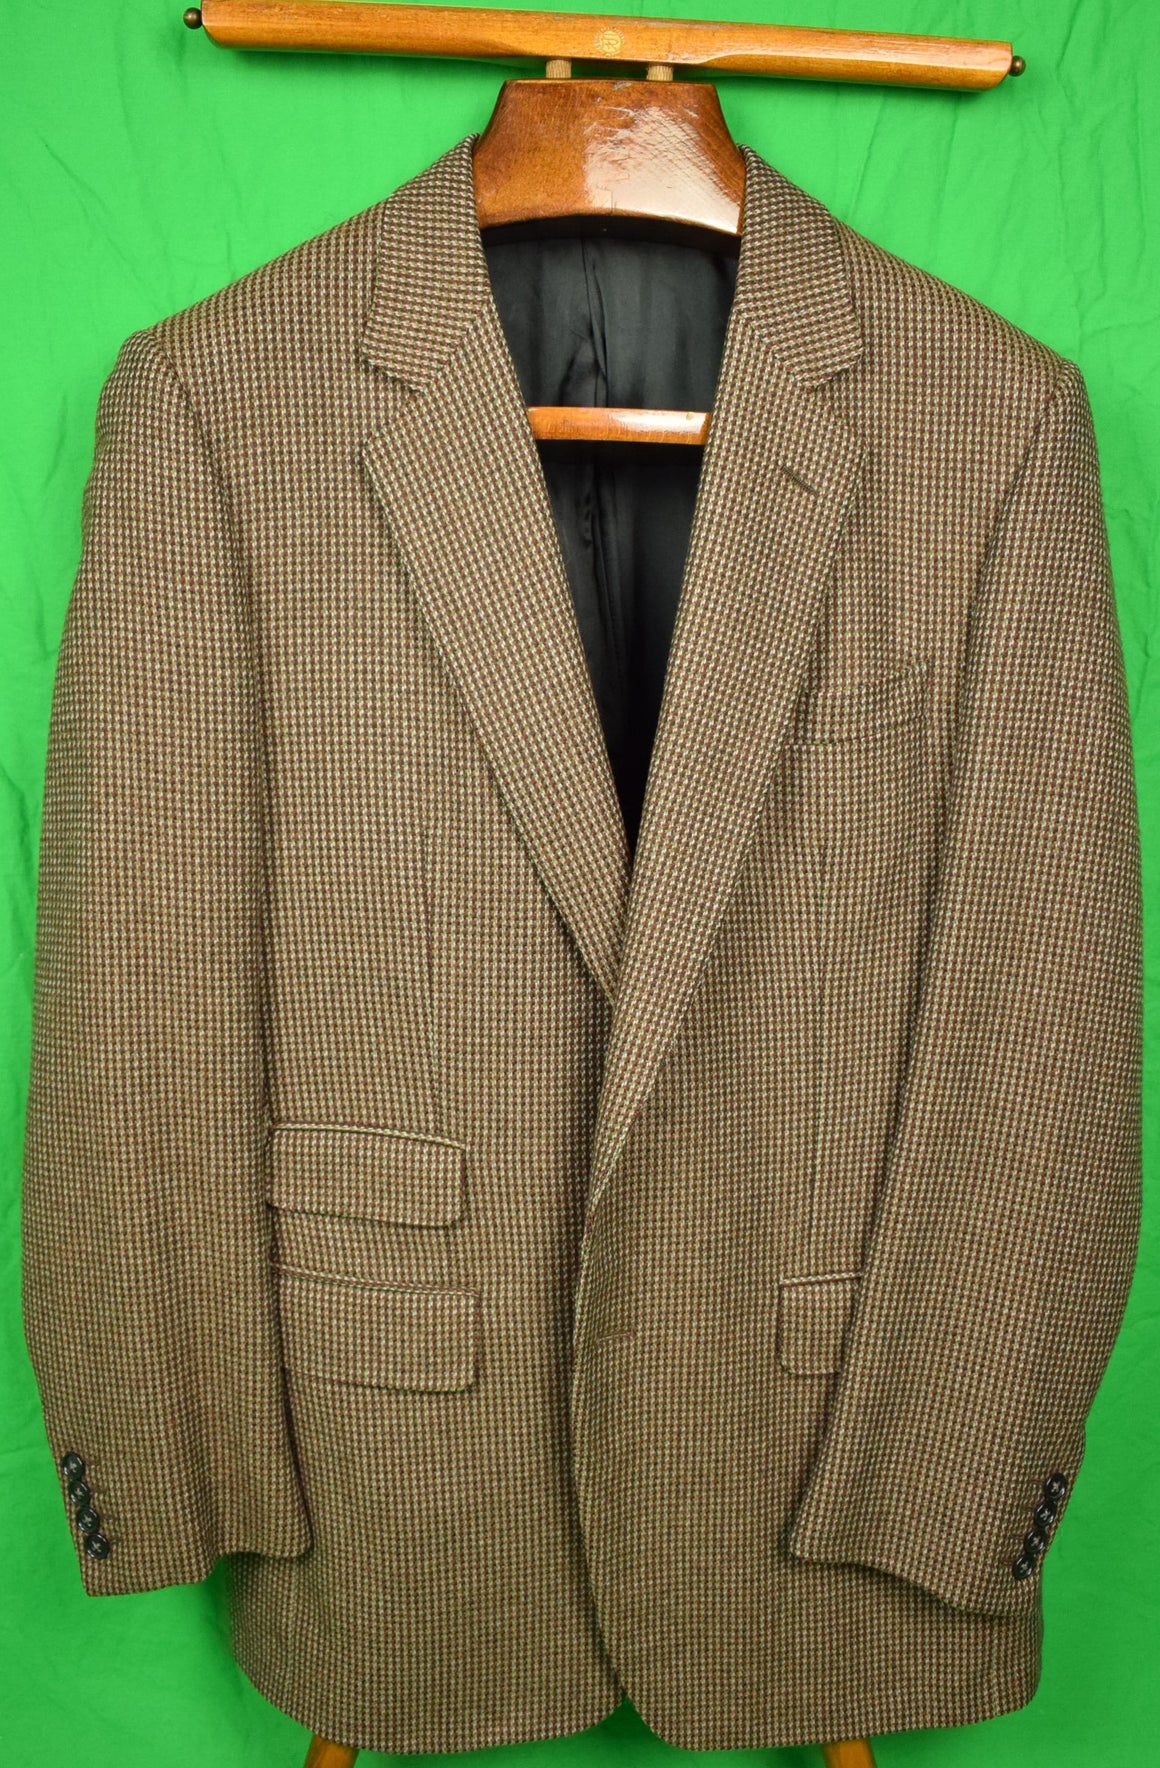 Alfred Dunhill Cashmere Tic Weave (2) Button Sport Jacket Sz: 42R